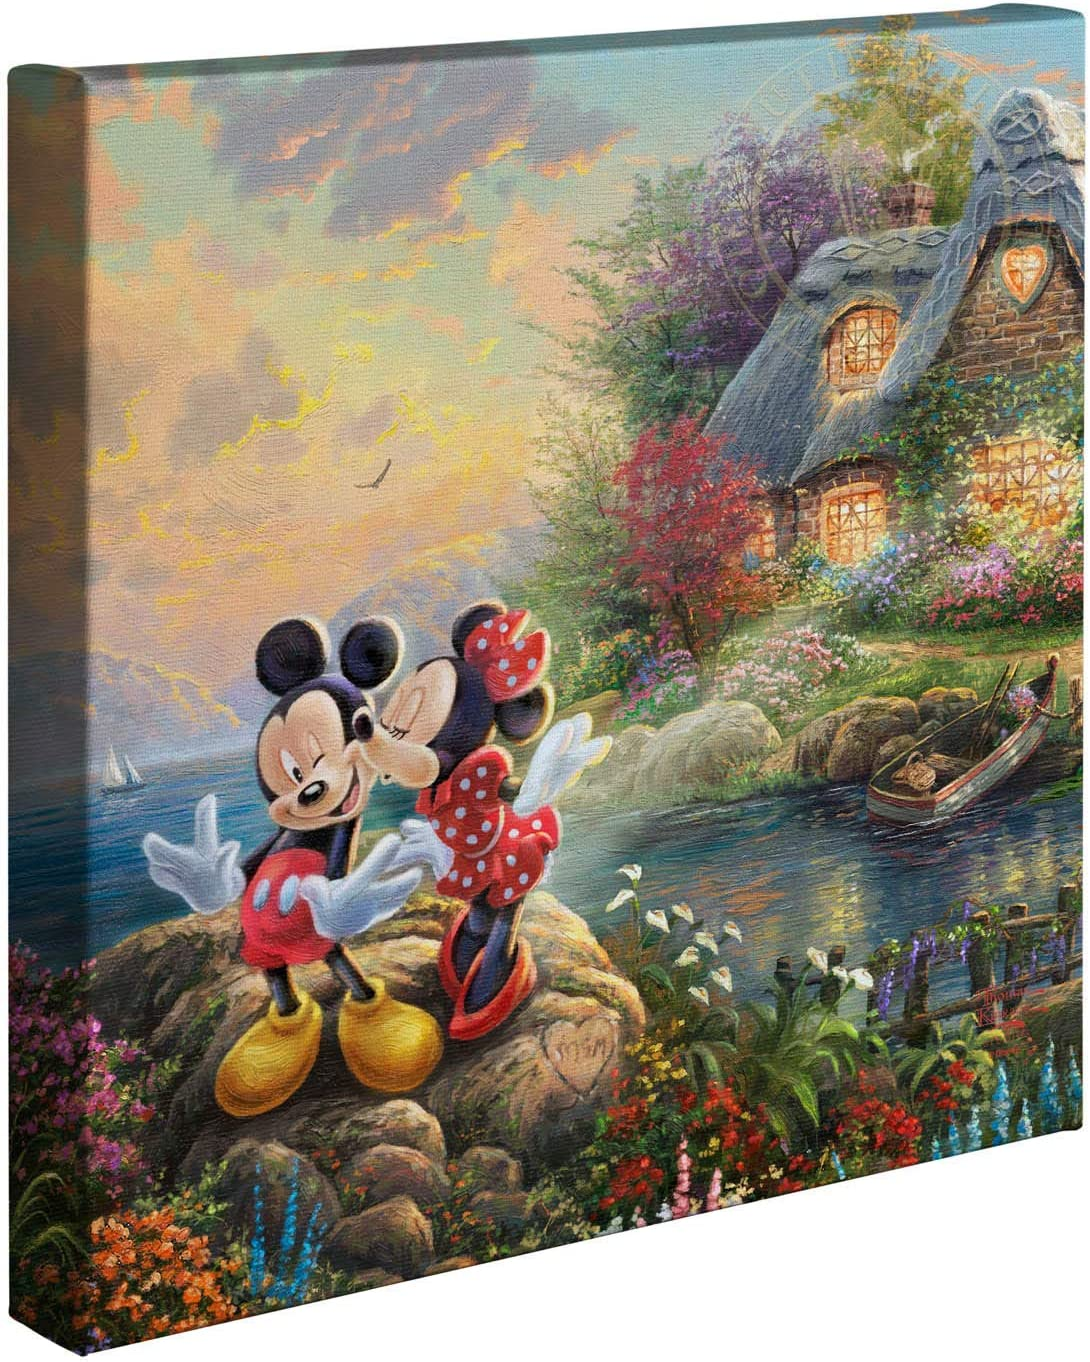 Thomas Kinkade Studios Disney's Mickey and Minnie Sweetheart Cove 14 x 14 Gallery Wrapped Canvas